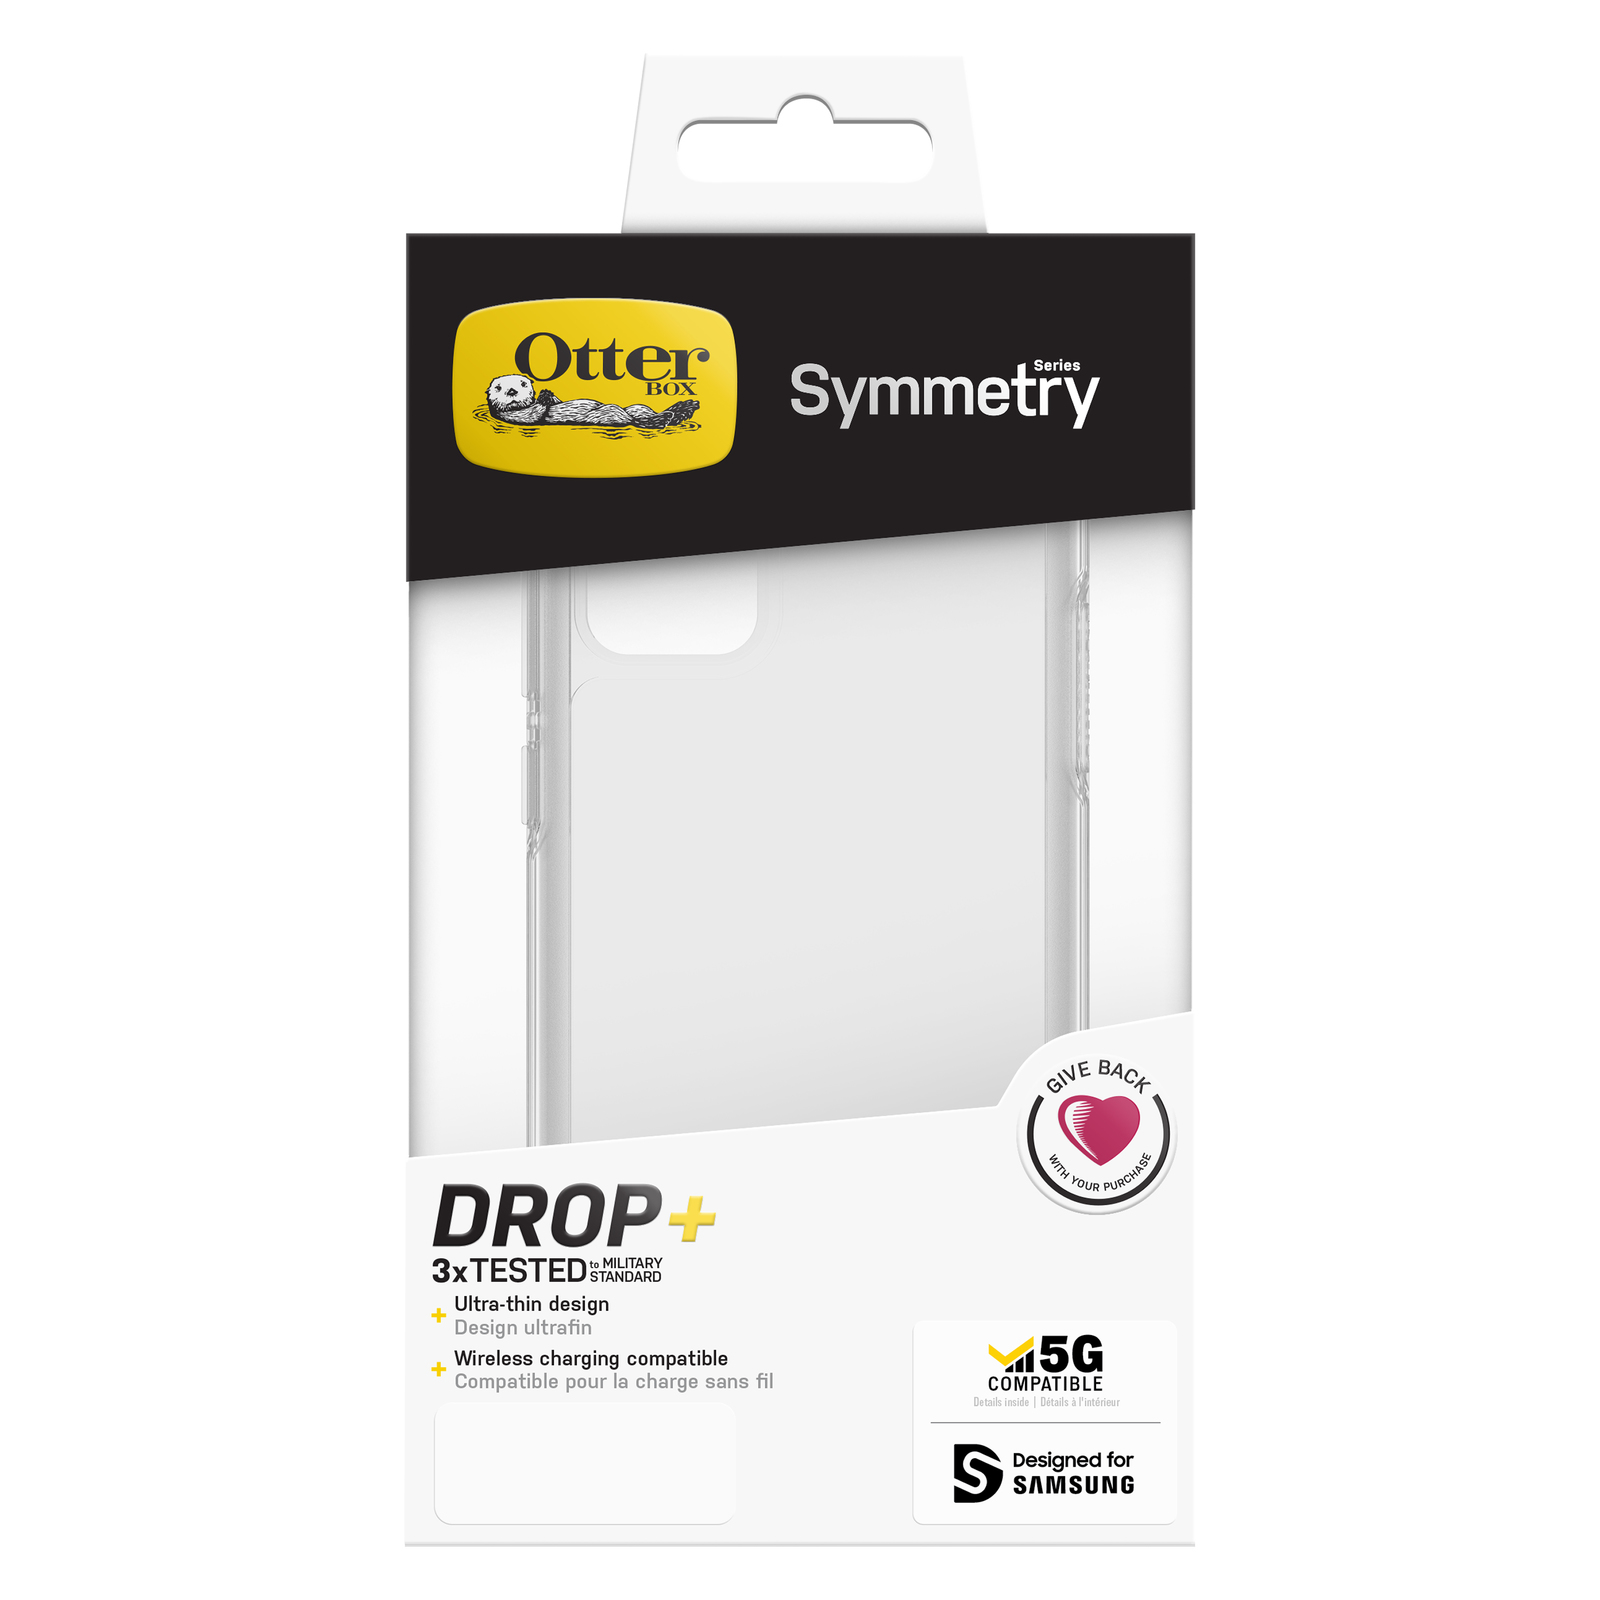 OtterBox: Symmetry Case - Clear image